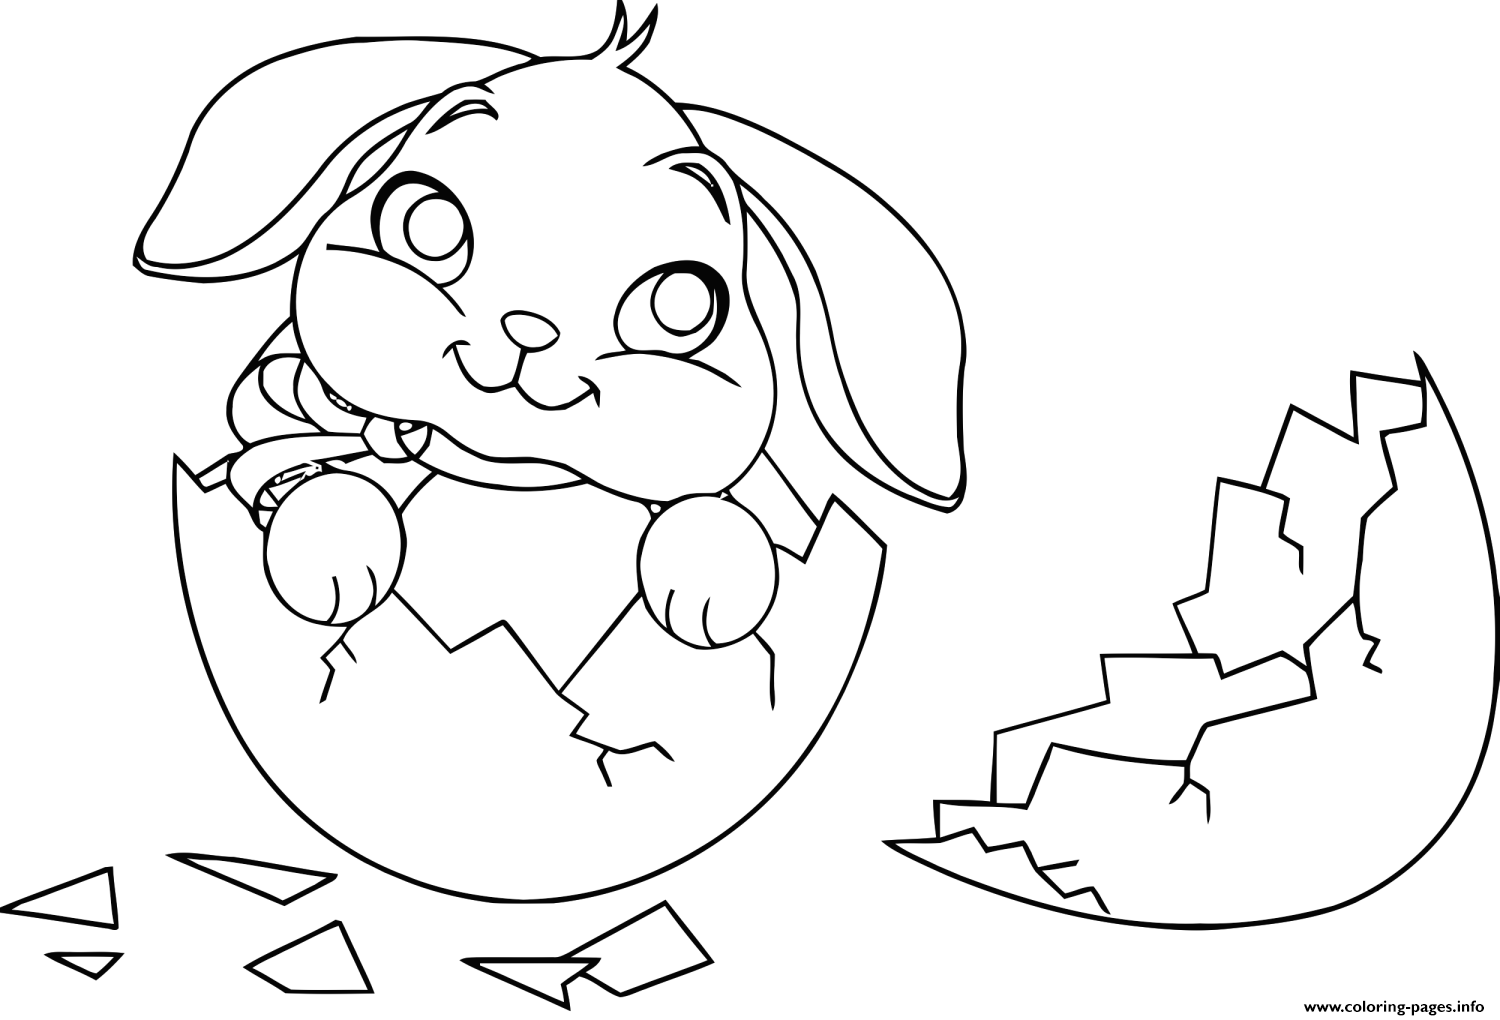 Cute Easter Bunny Egg coloring pages